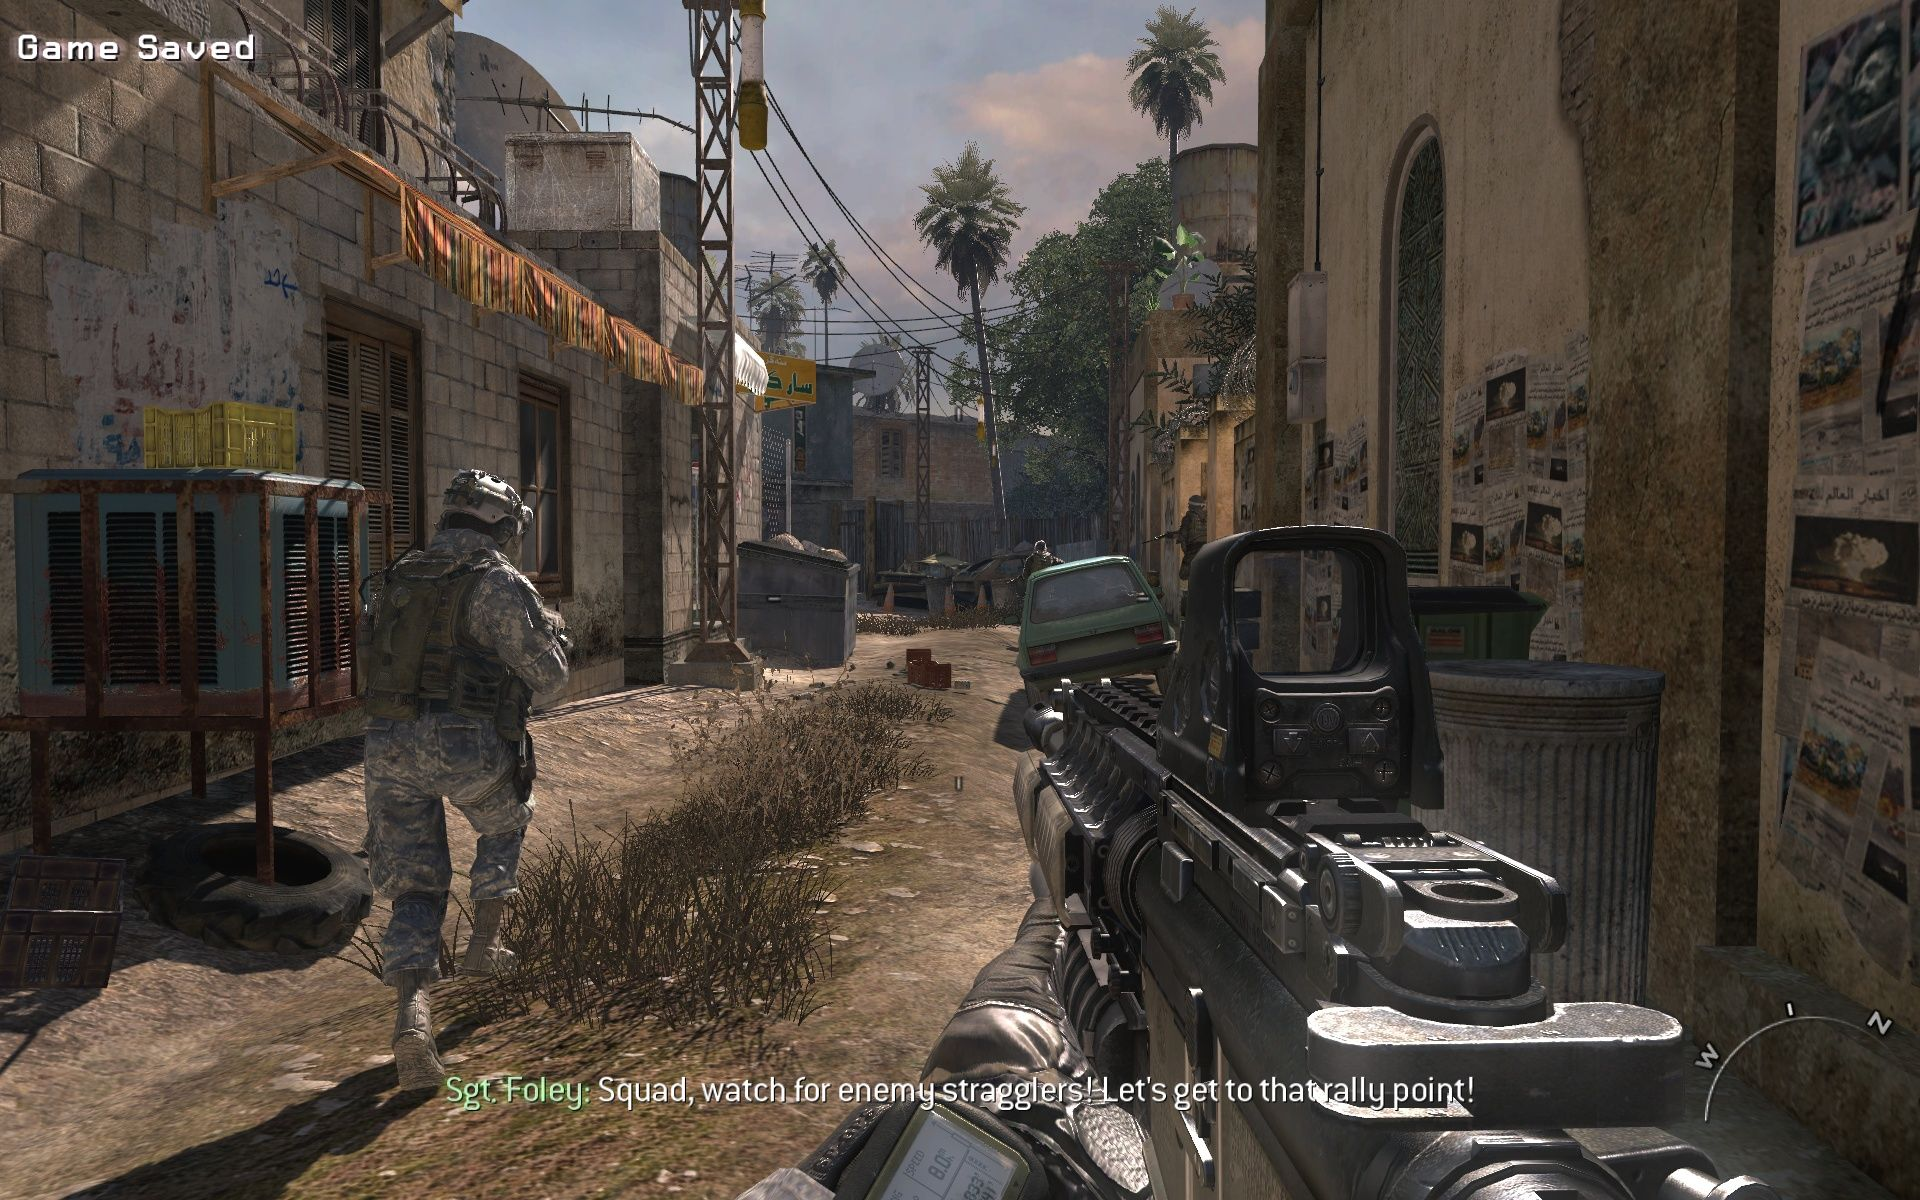 Call of Duty: Modern Warfare 2 Windows This doesn't look like a friendly neighbourhood.